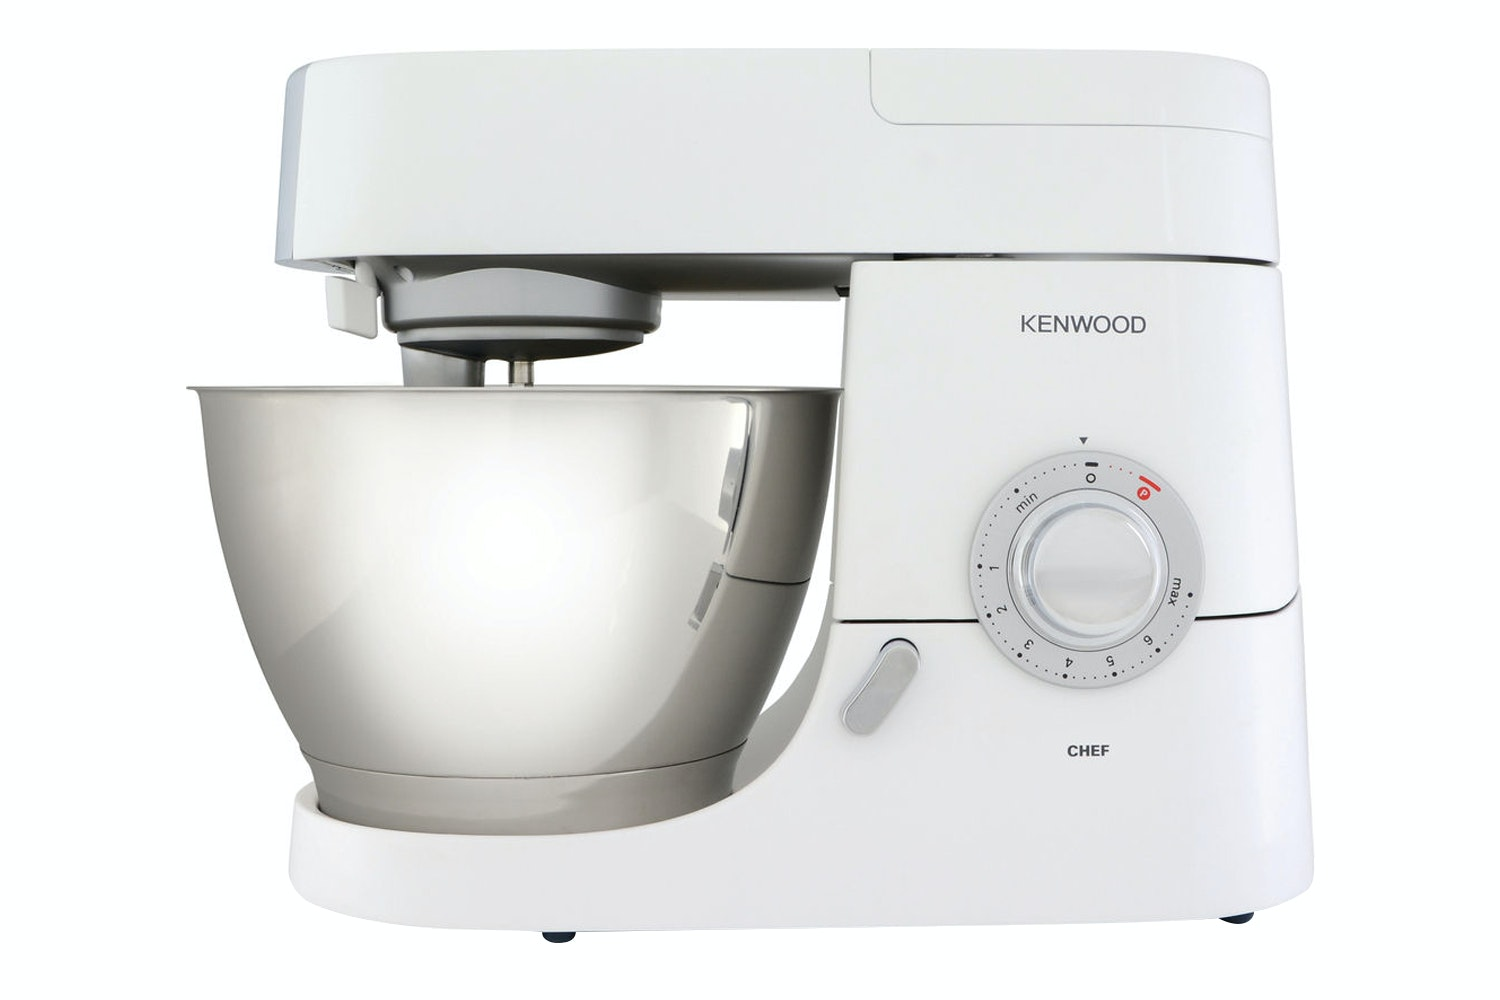 Kenwood Chef Premier Kitchen Mixer | KMC515